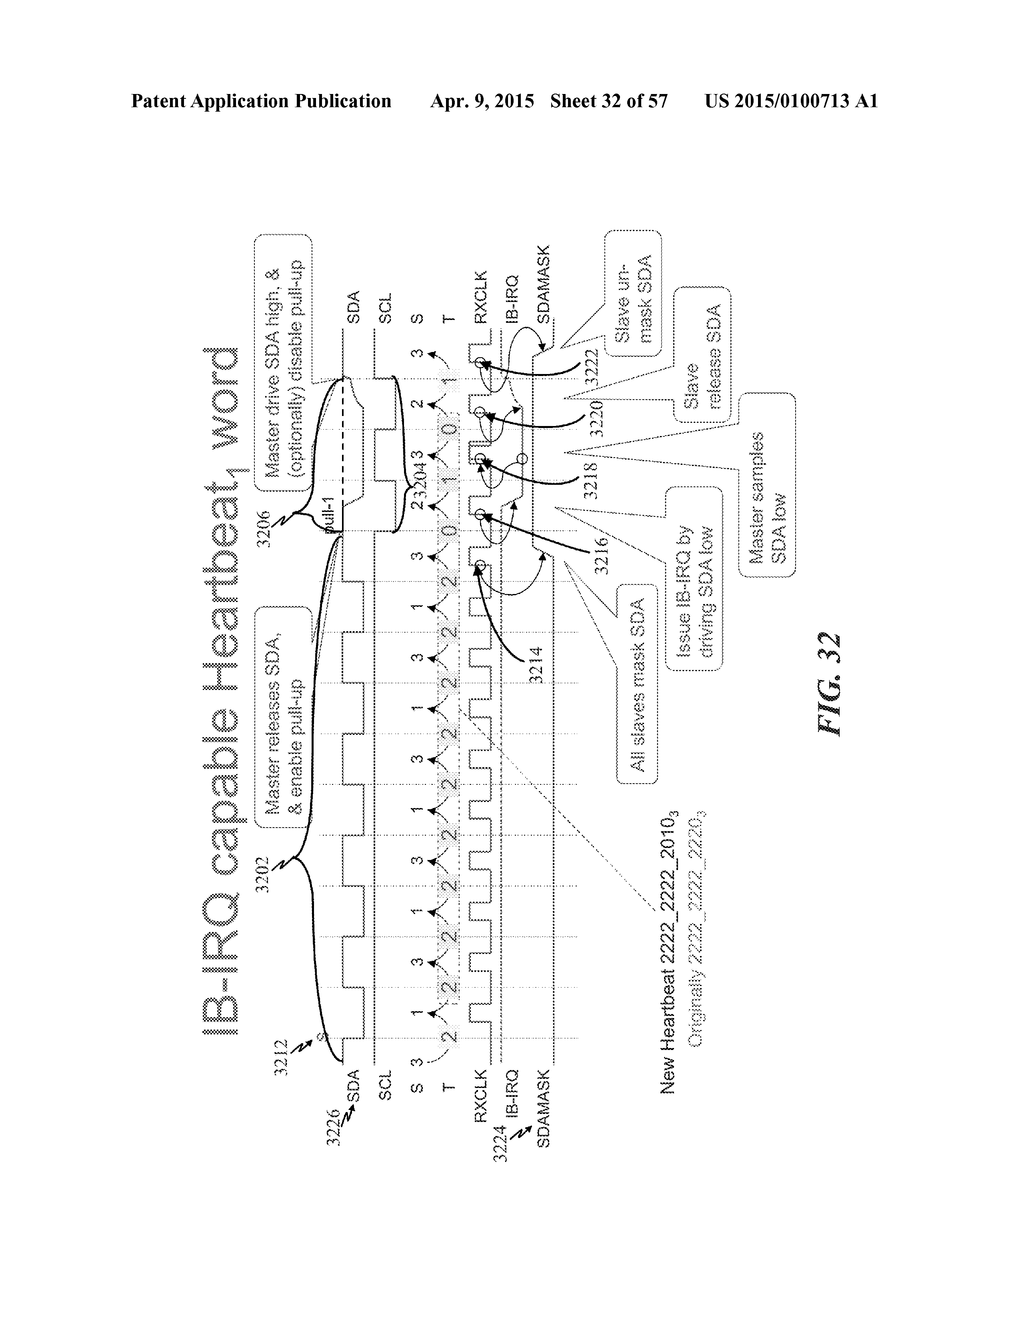 hight resolution of coexistence of i2c slave devices and camera control interface extension devices on a shared control data bus diagram schematic and image 33